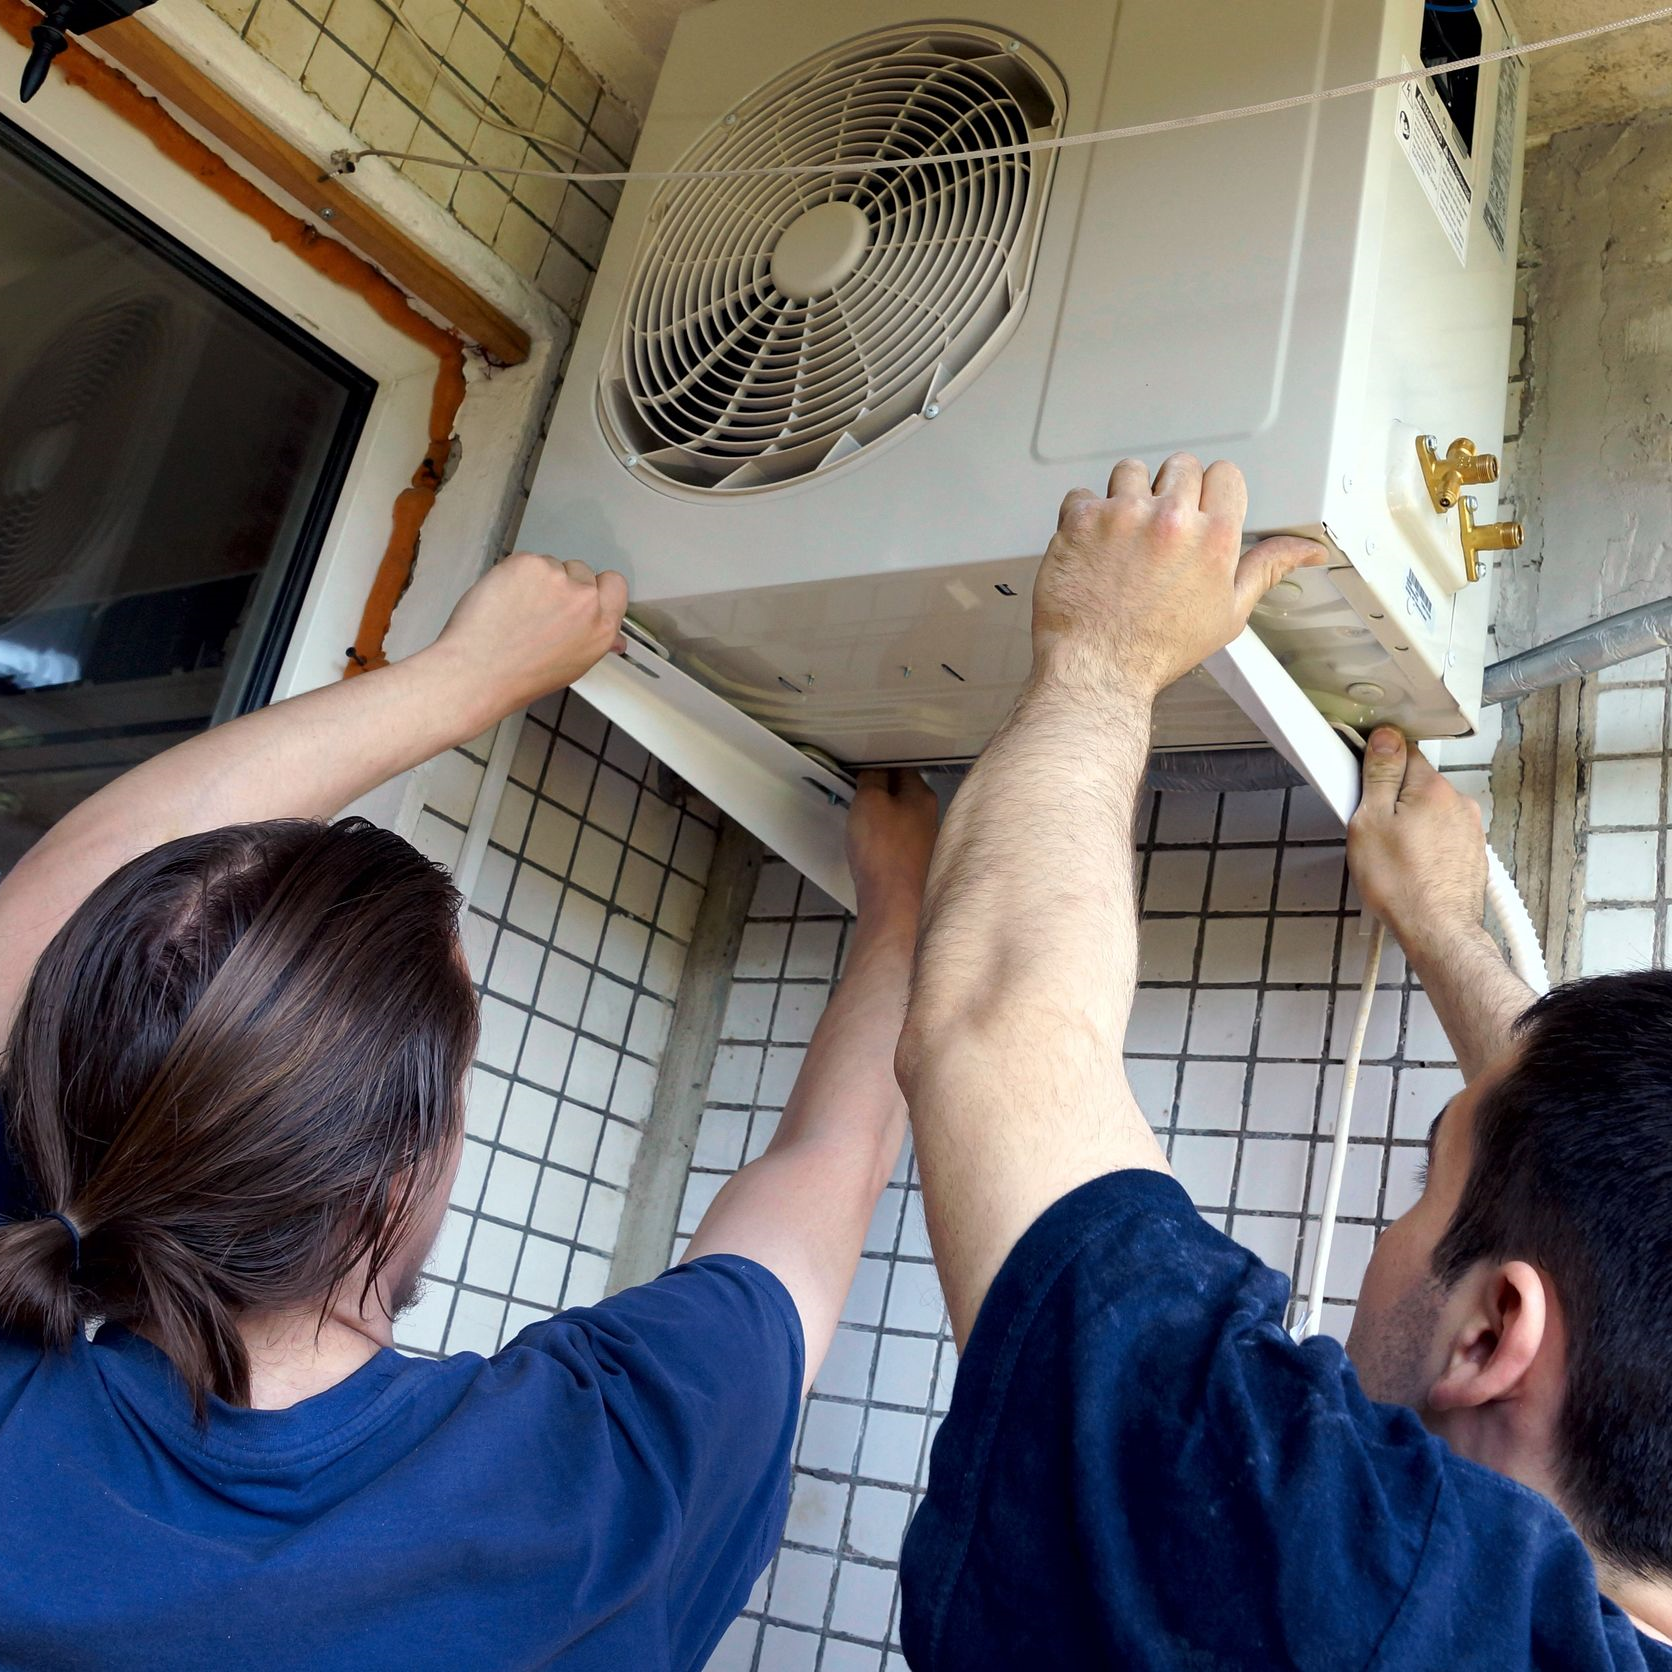 Technicians installing an air conditioner